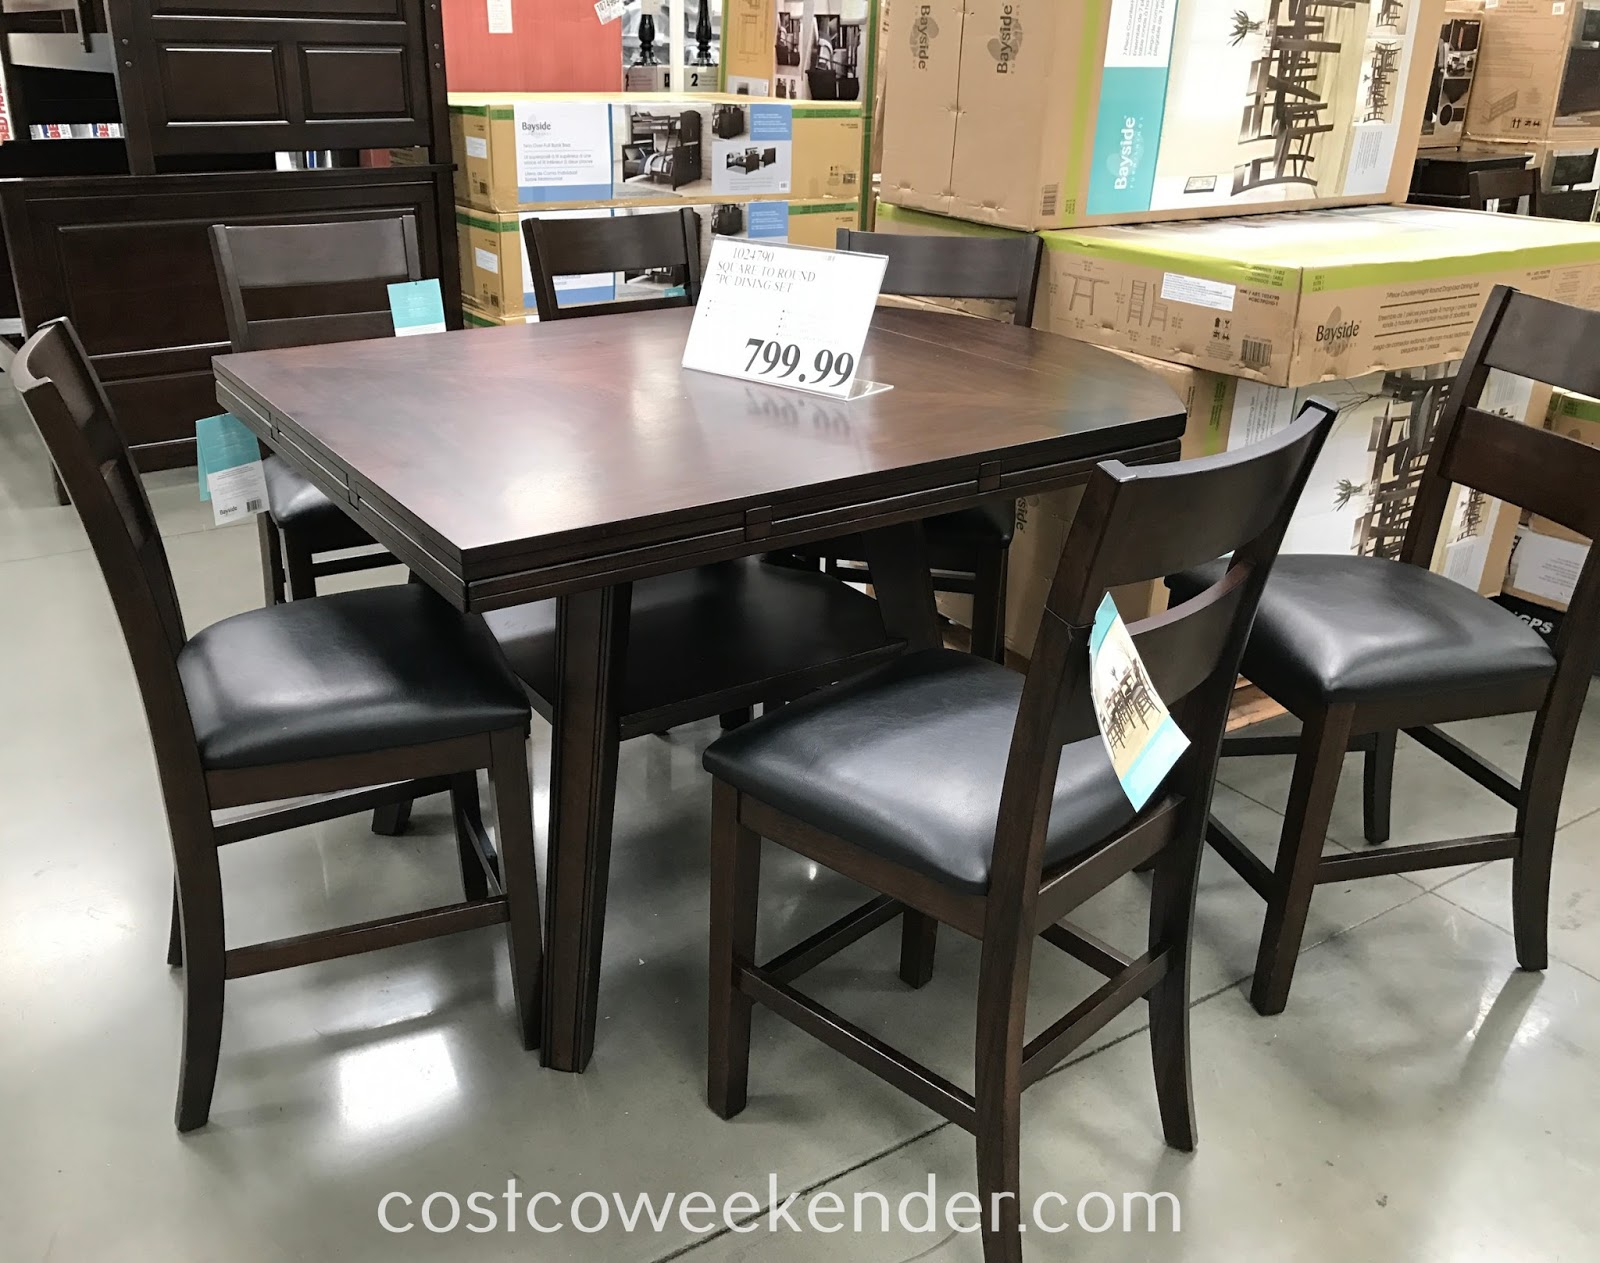 Furnish your home with the Bayside Furnishings Counter Height Square to Round Dining Set